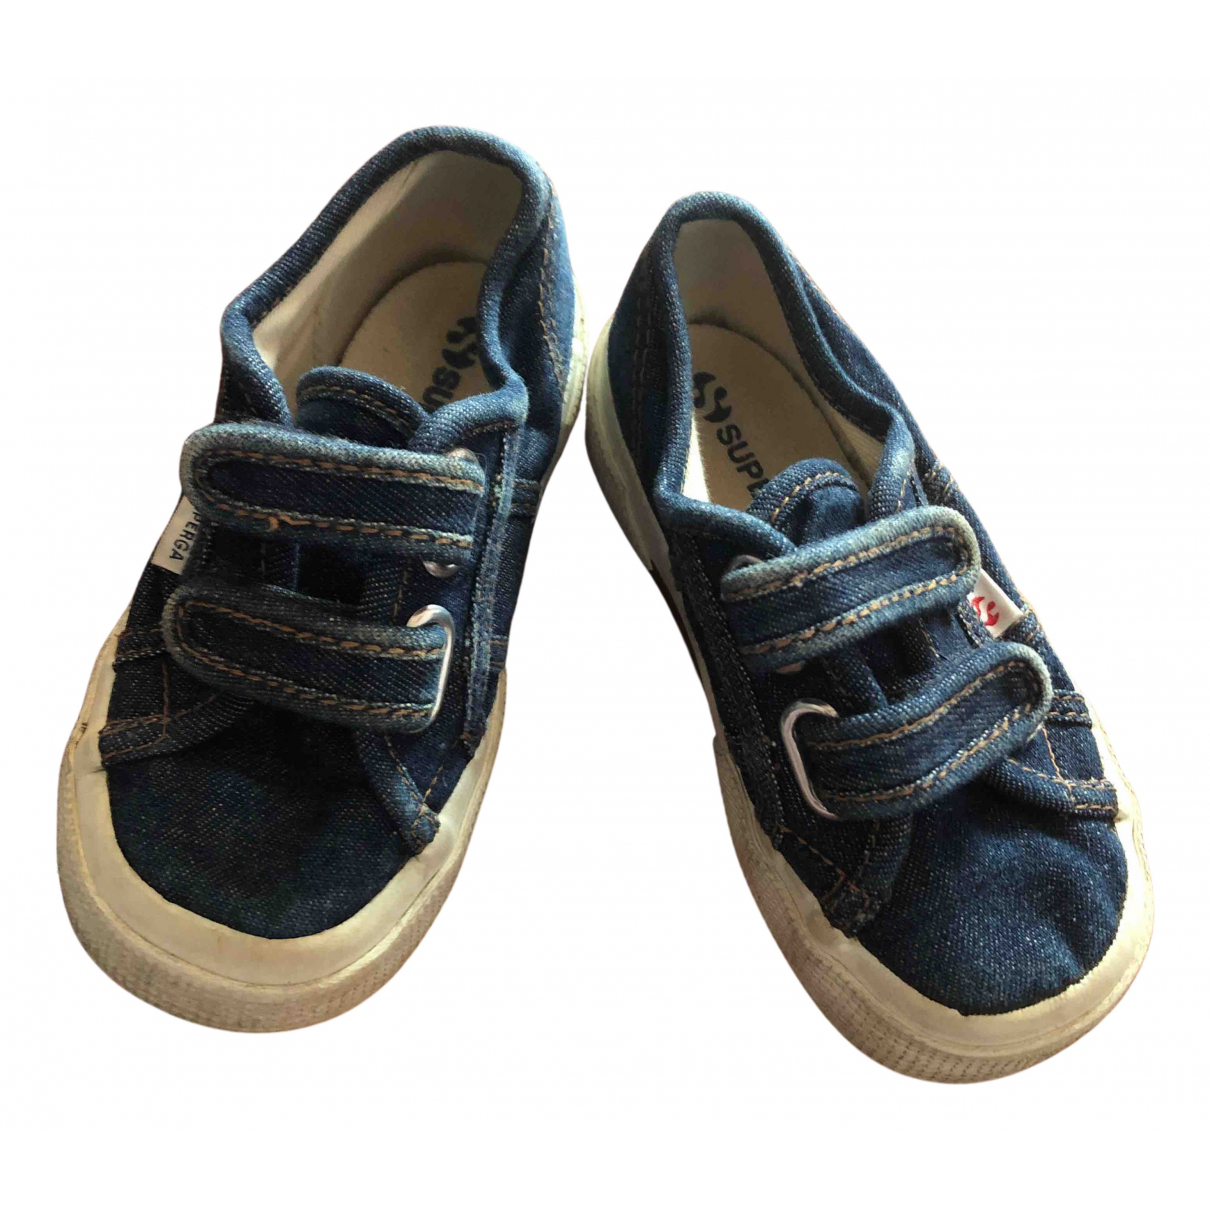 Superga N Blue Cloth Trainers for Kids 25 FR